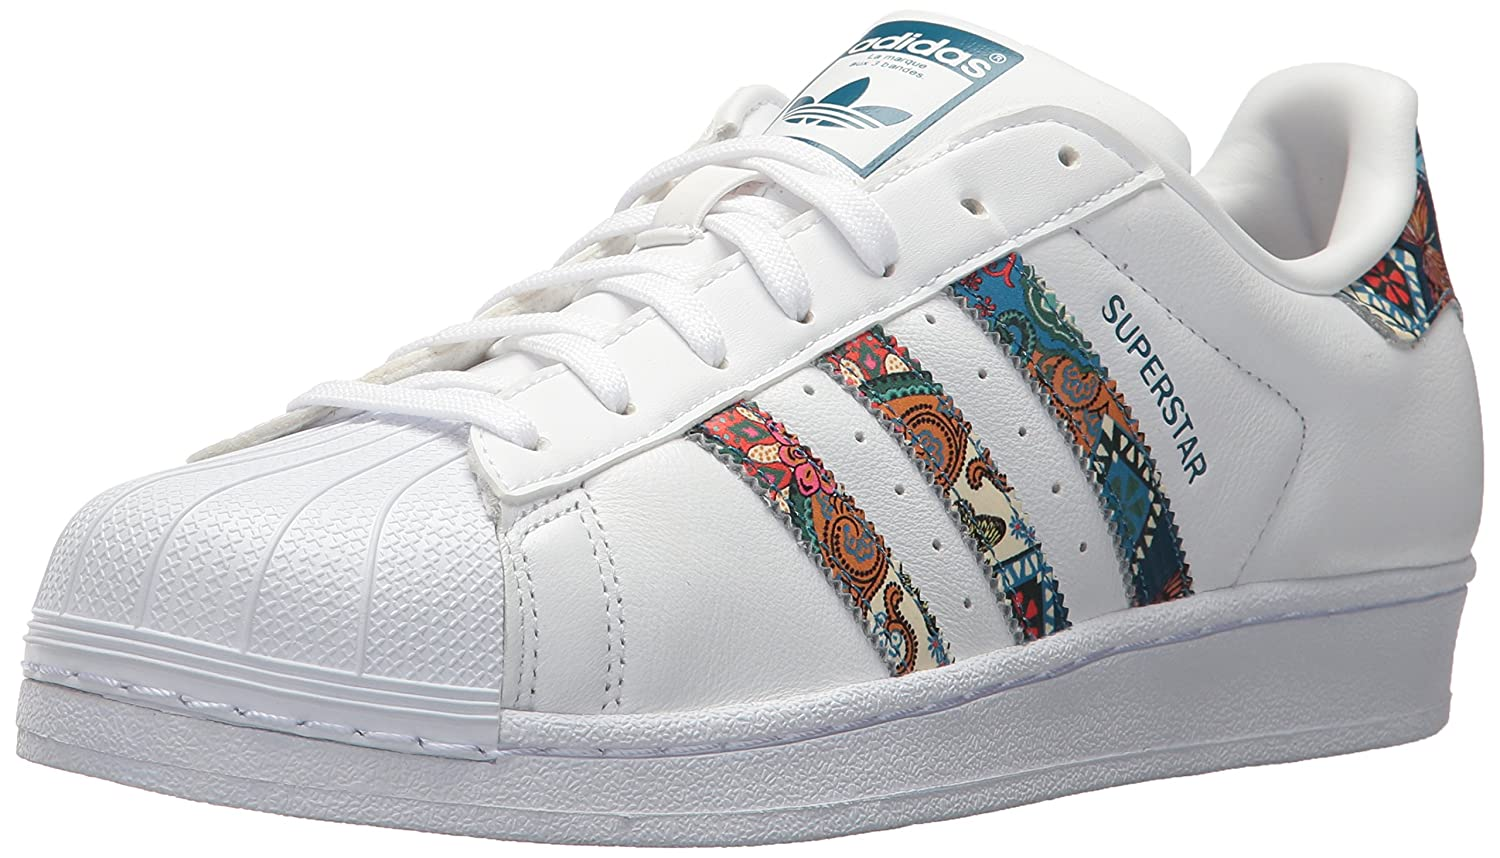 adidas Women's Originals Superstar B01N6J45AD 11 B(M) US|White/White/Noble Teal